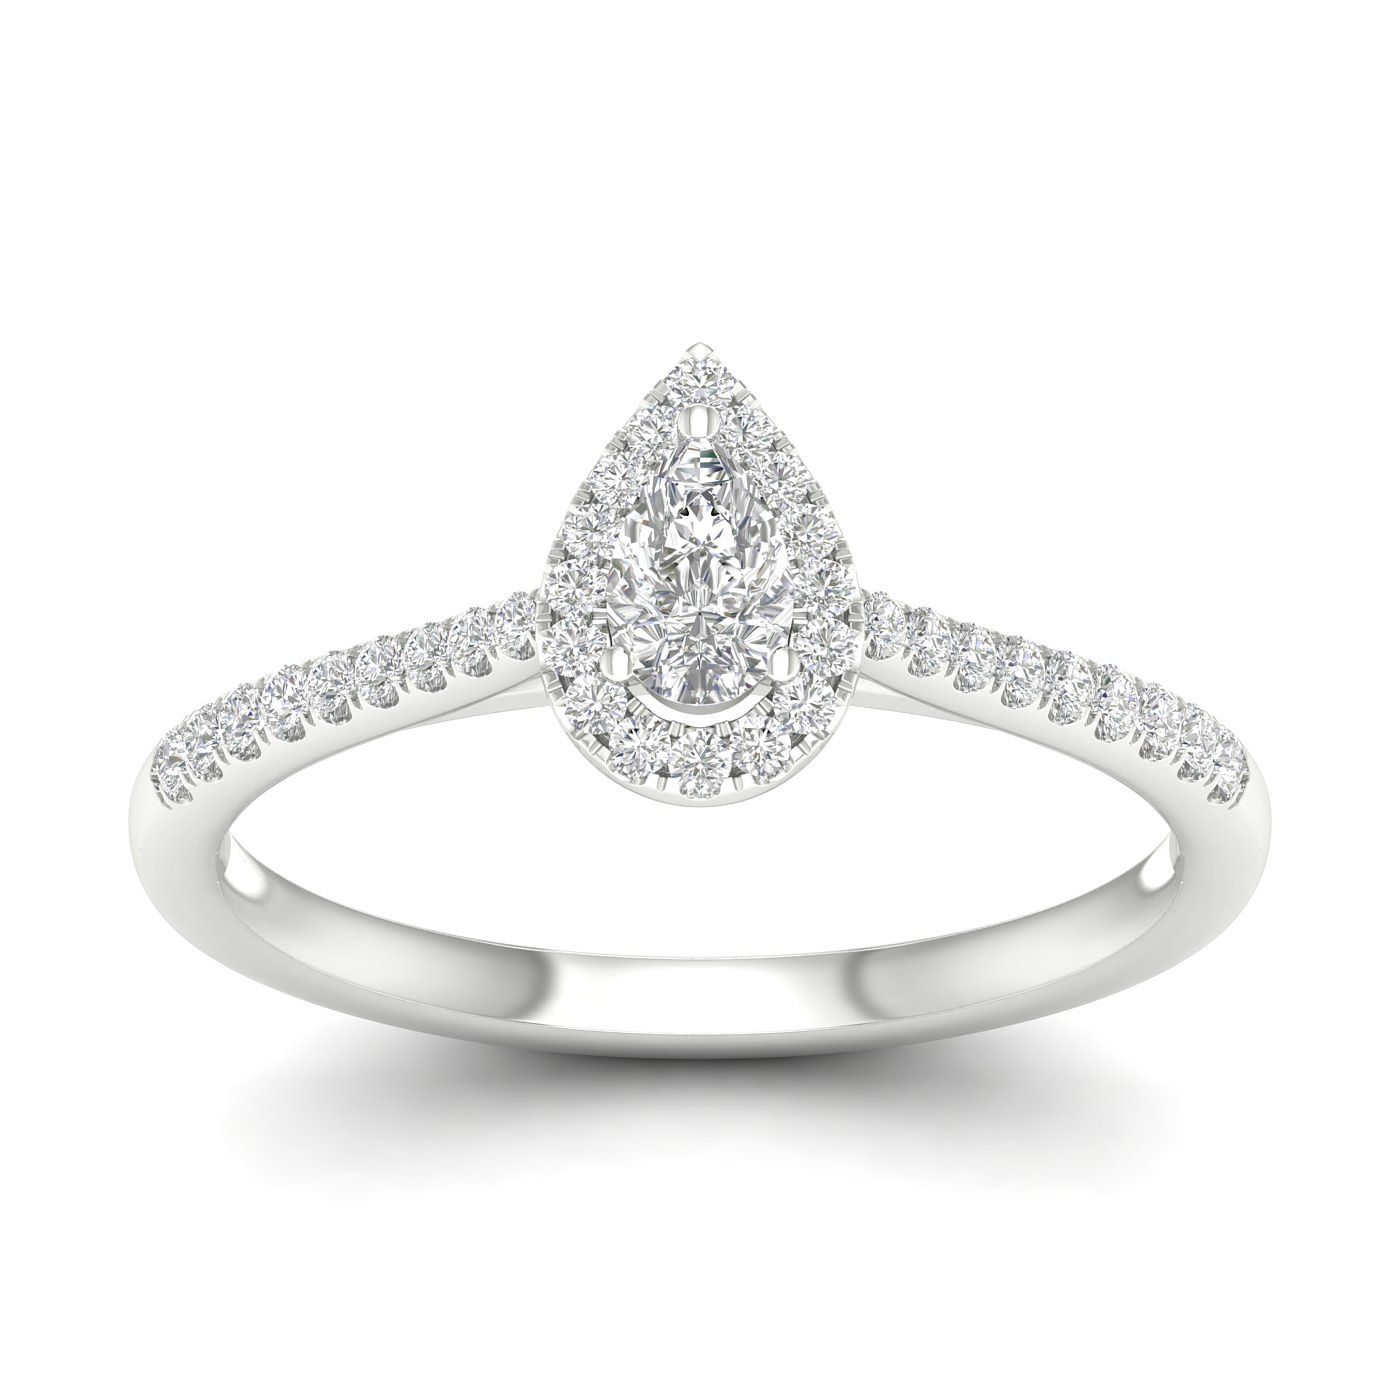 9ct White Gold 0.33ct Pear Cut Diamond Halo Ring - Product number 5947030